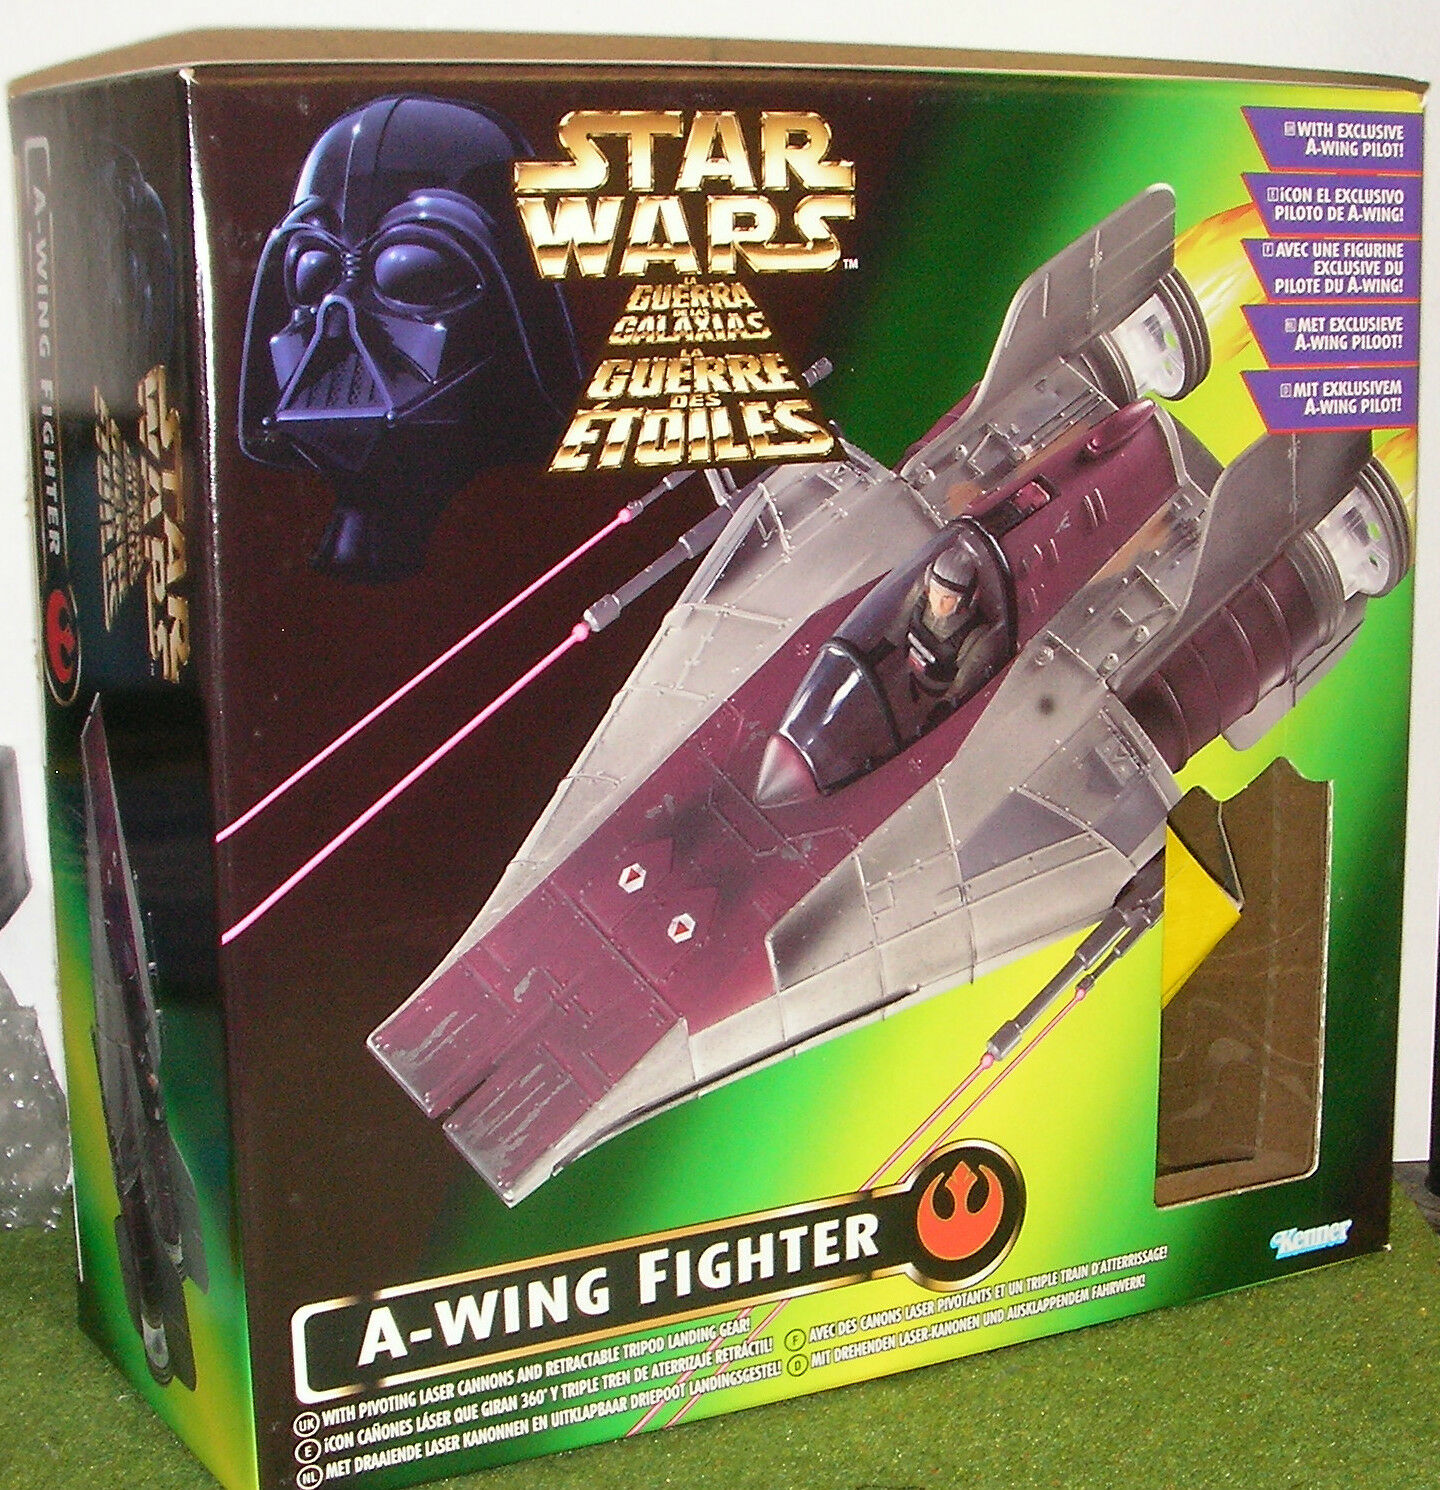 STAR WARS RETURN OF THE JEDI POWER OF THE FORCE 2 A-WING FIGHTER w  PILOT